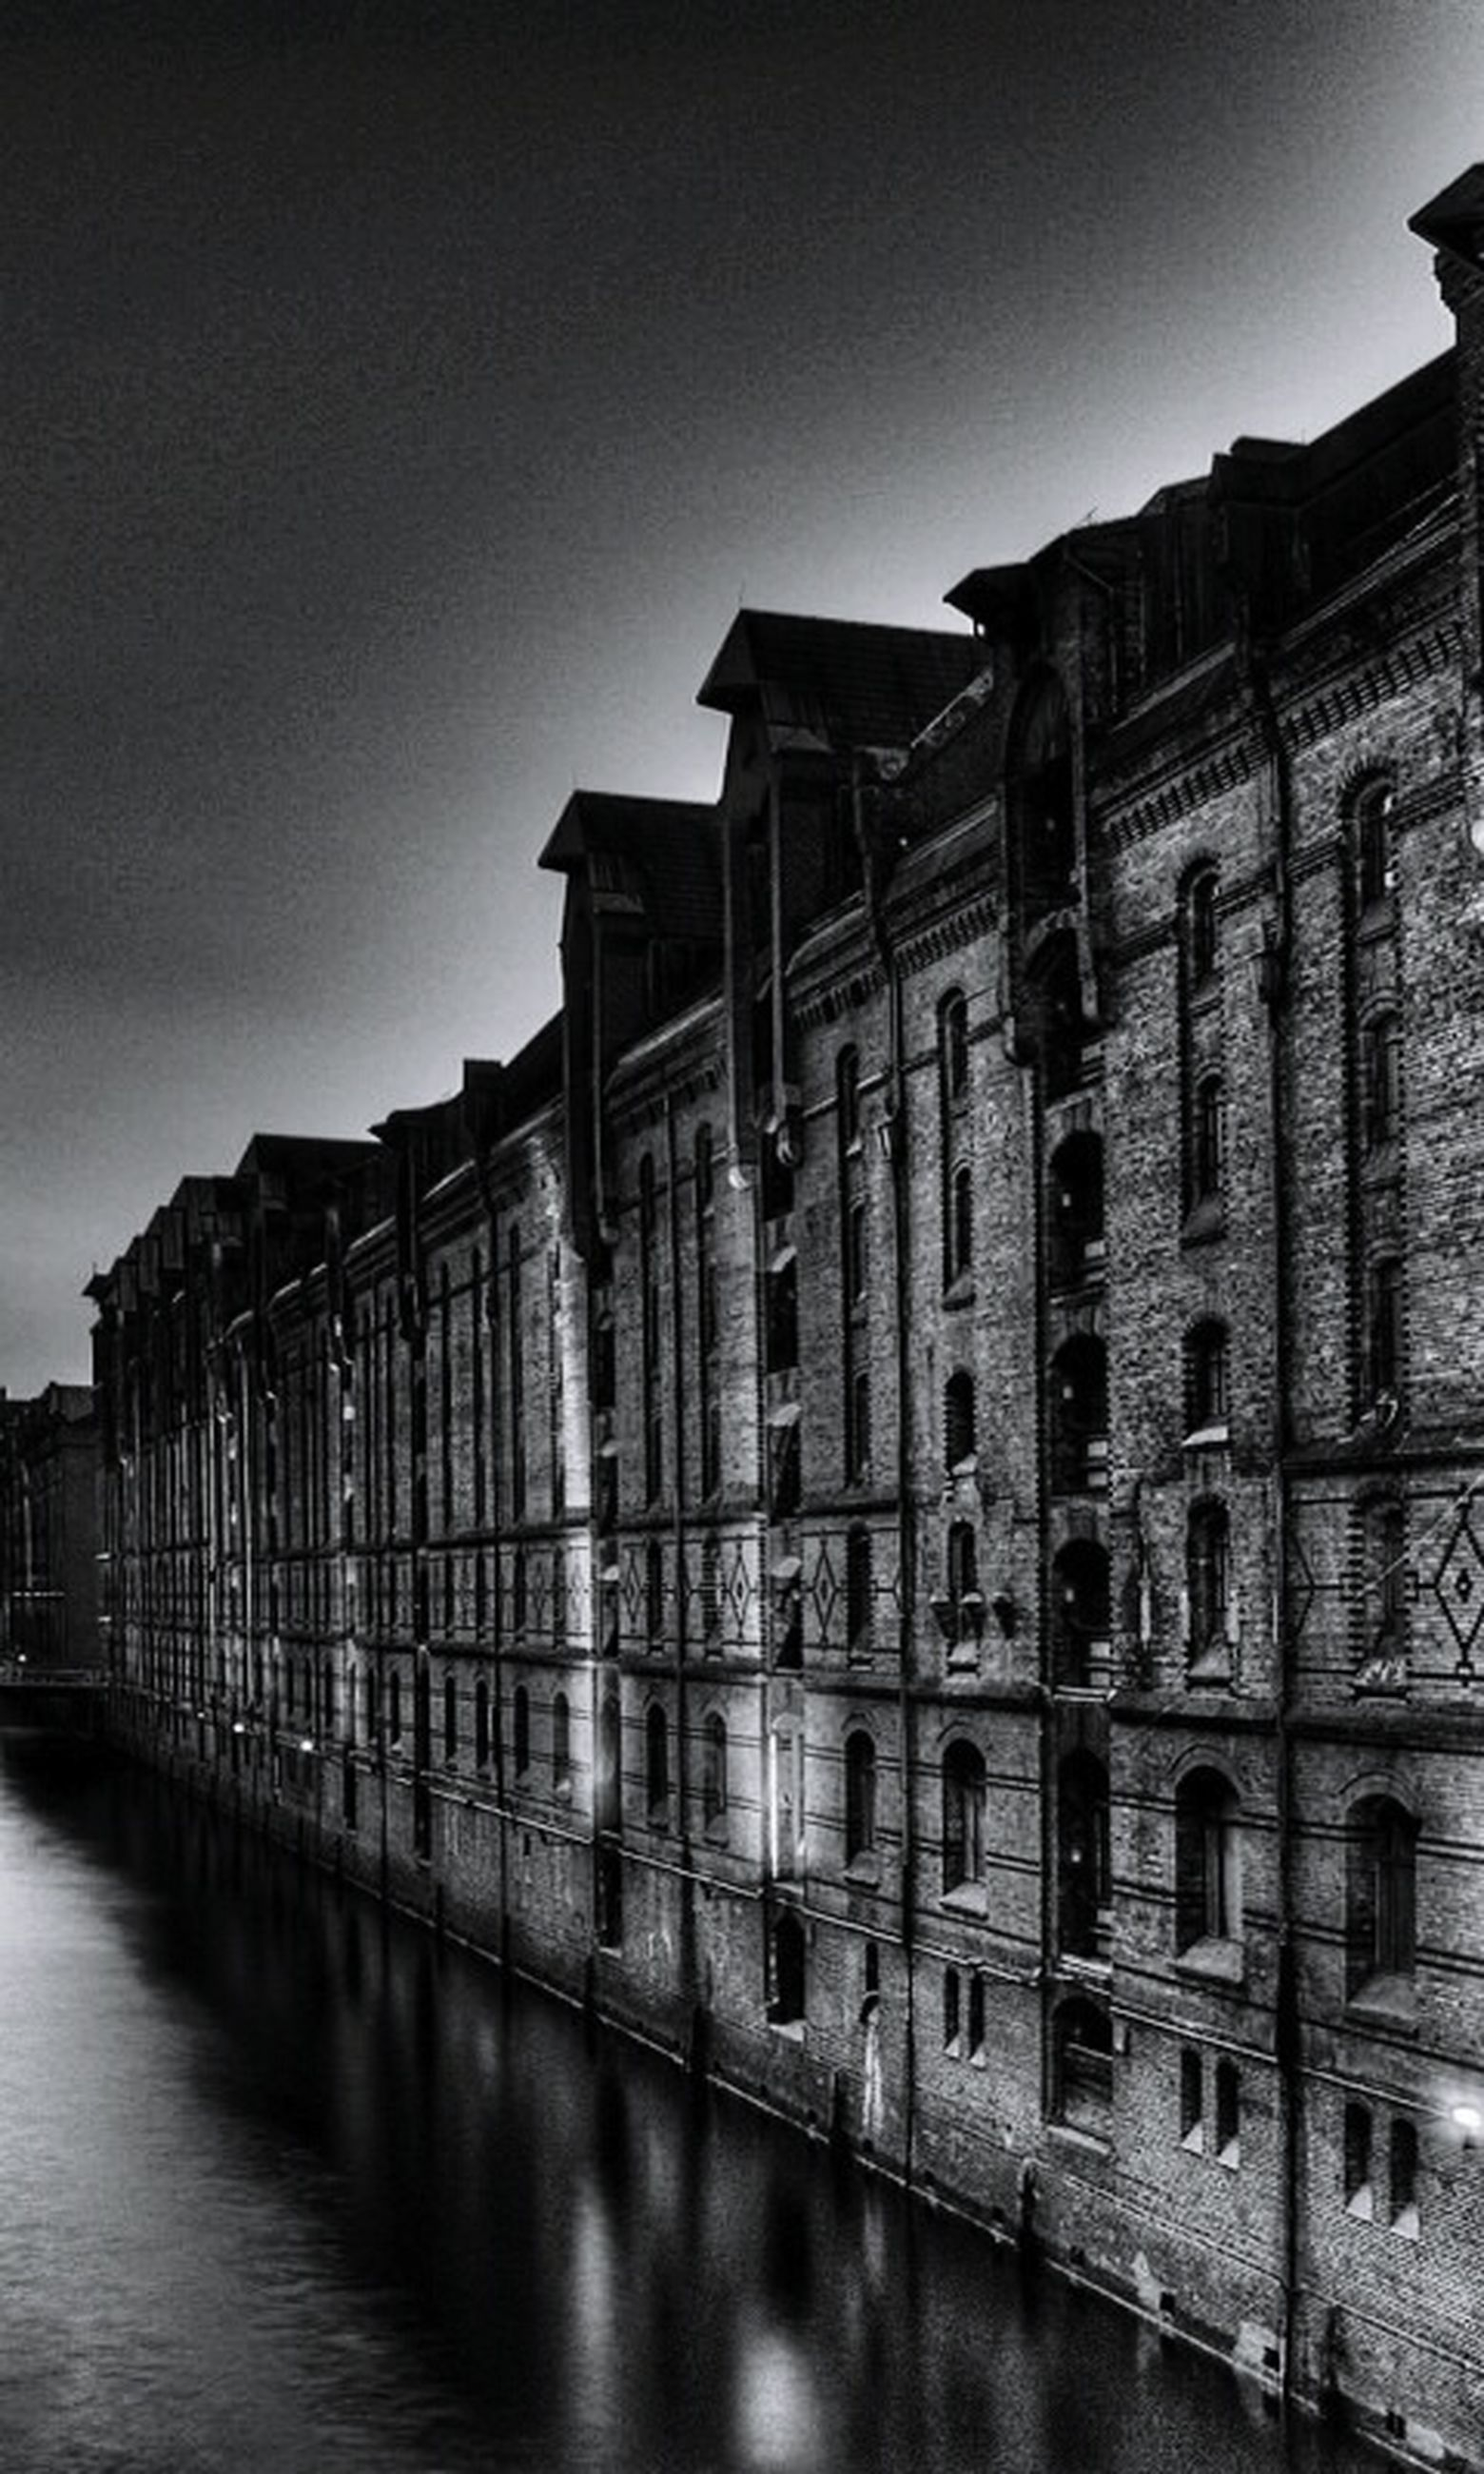 architecture, built structure, building exterior, water, reflection, waterfront, clear sky, sky, canal, city, river, outdoors, history, travel destinations, building, transportation, window, no people, day, travel